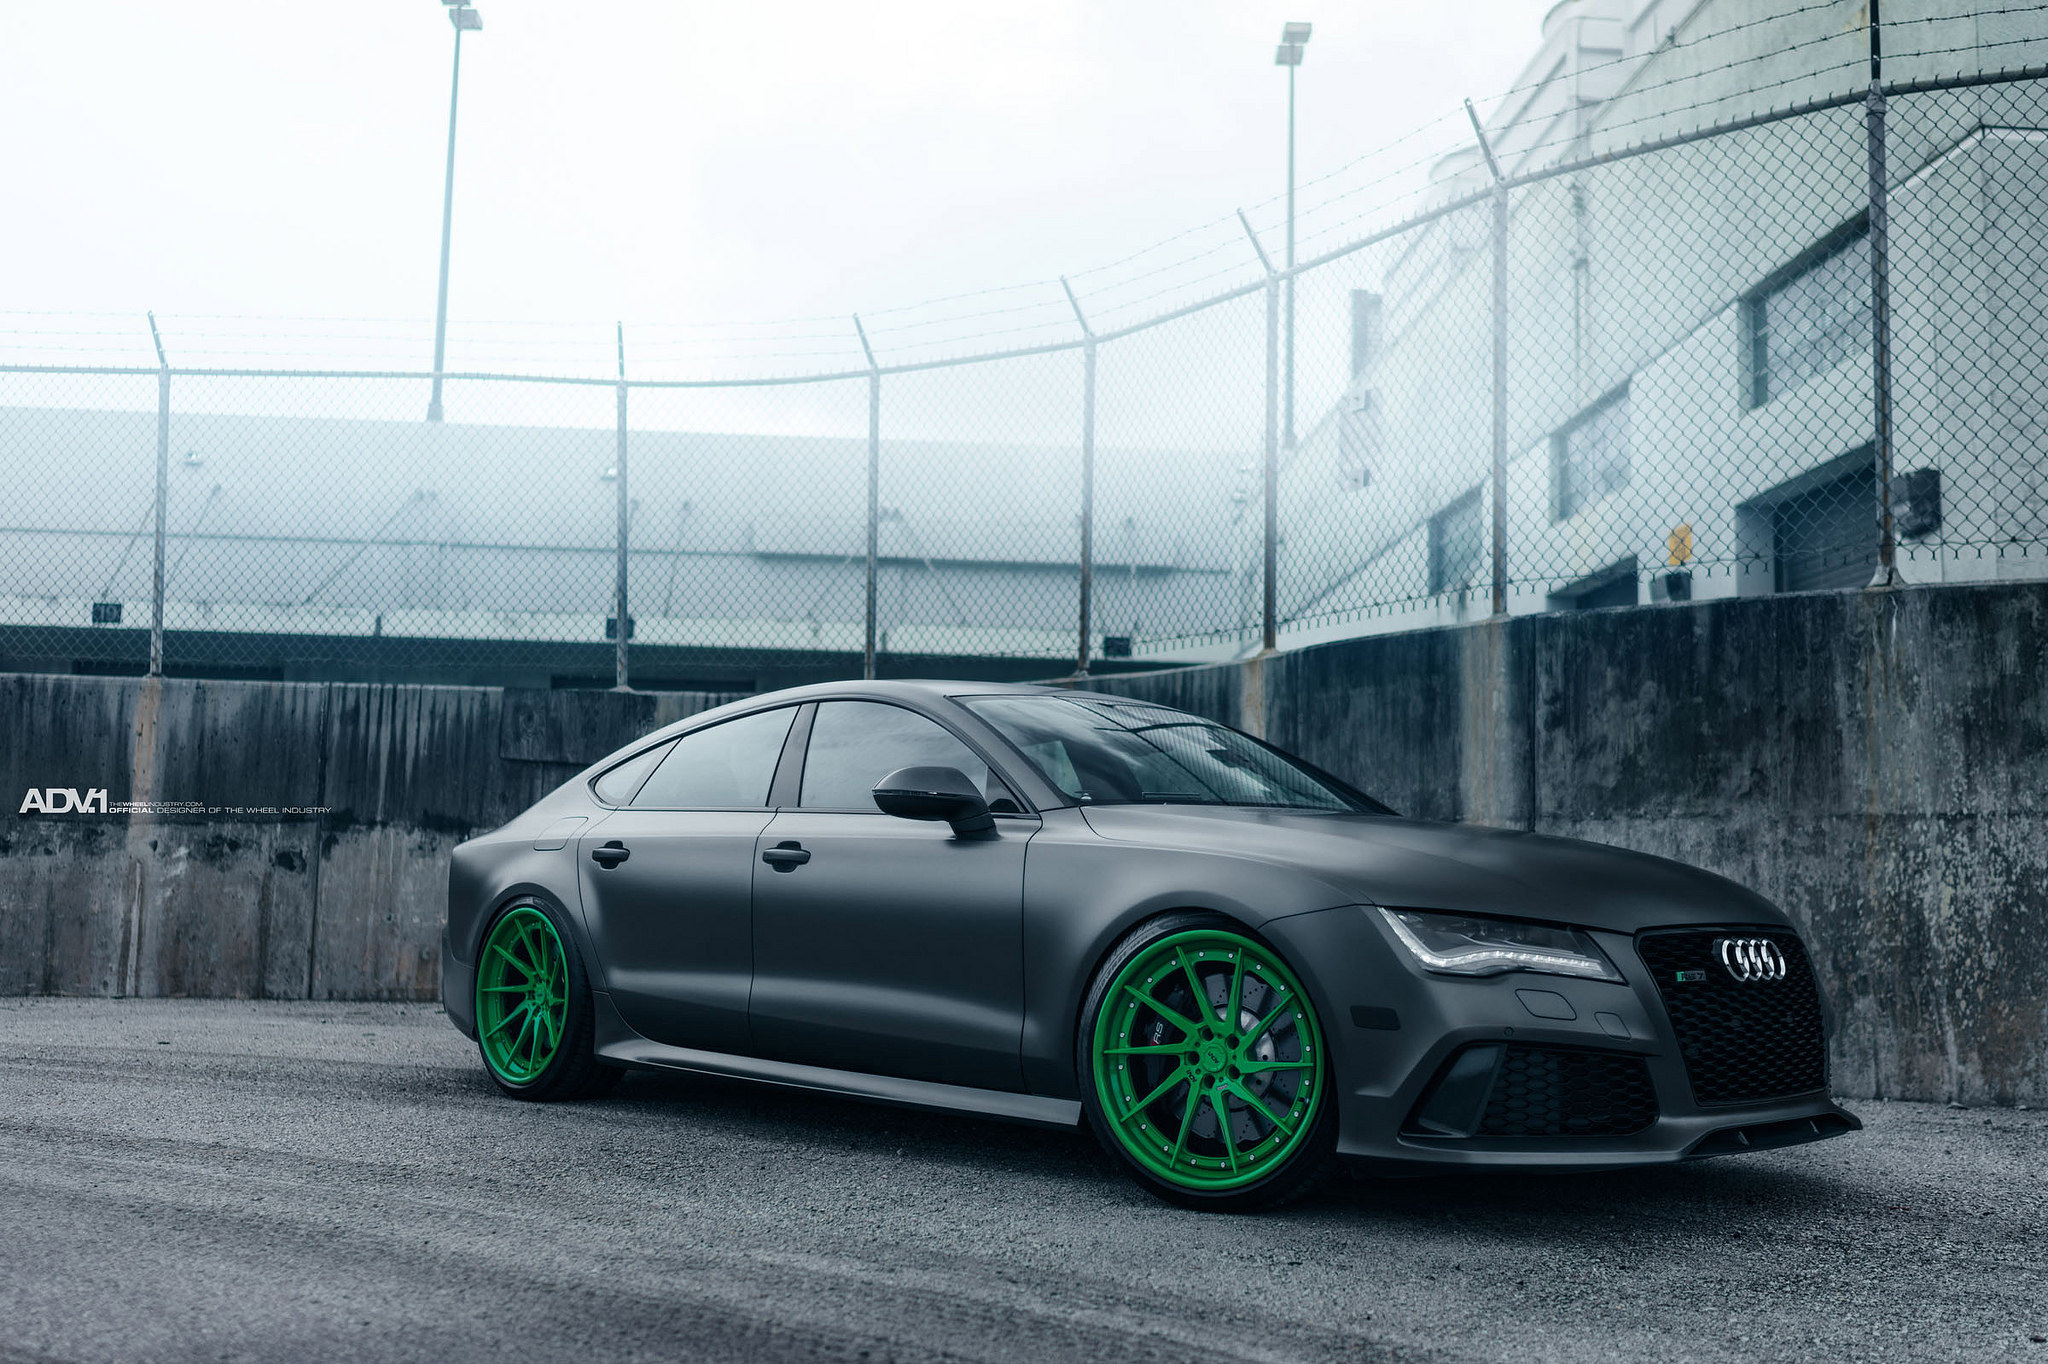 Audi RS7 Featuring A Set Of ADV 1 Wheels - VR World